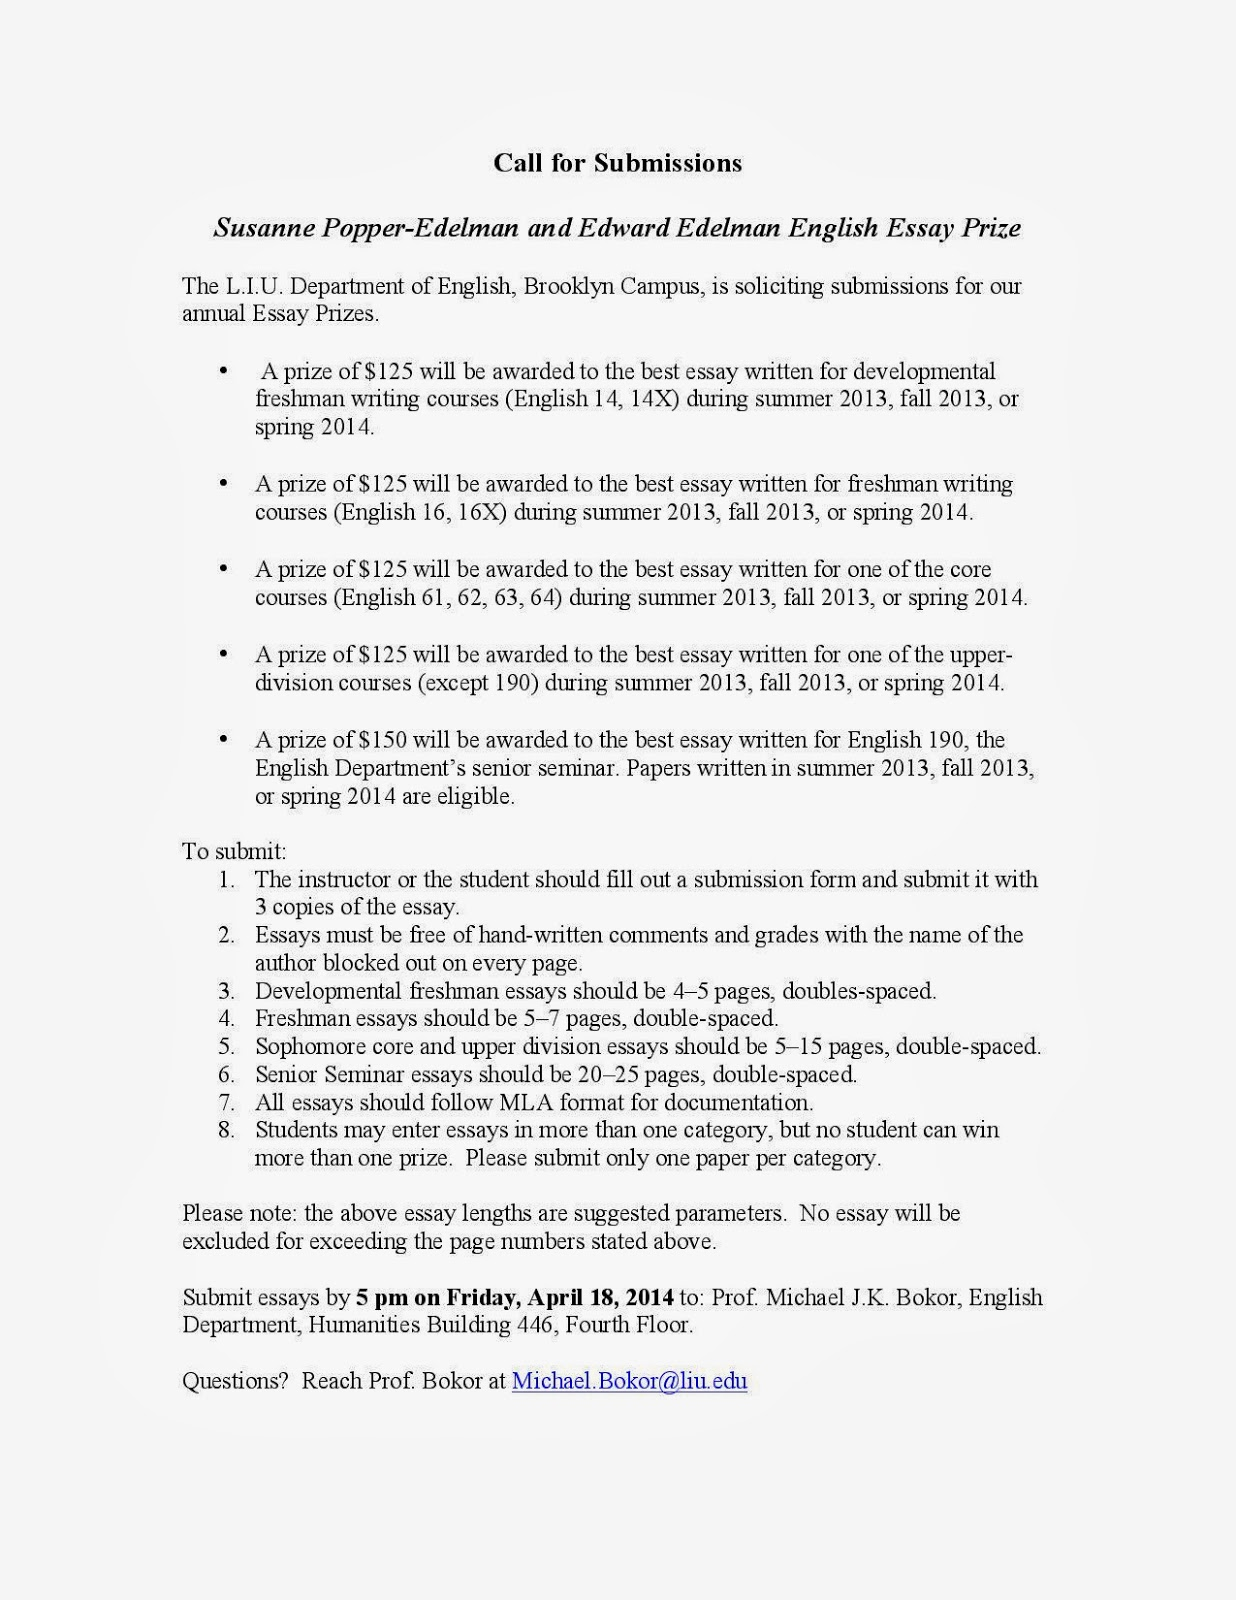 spring break essay essay paper propaganda essay writing a college  the longest island call for submissions 2014 popper edelman essay prizes